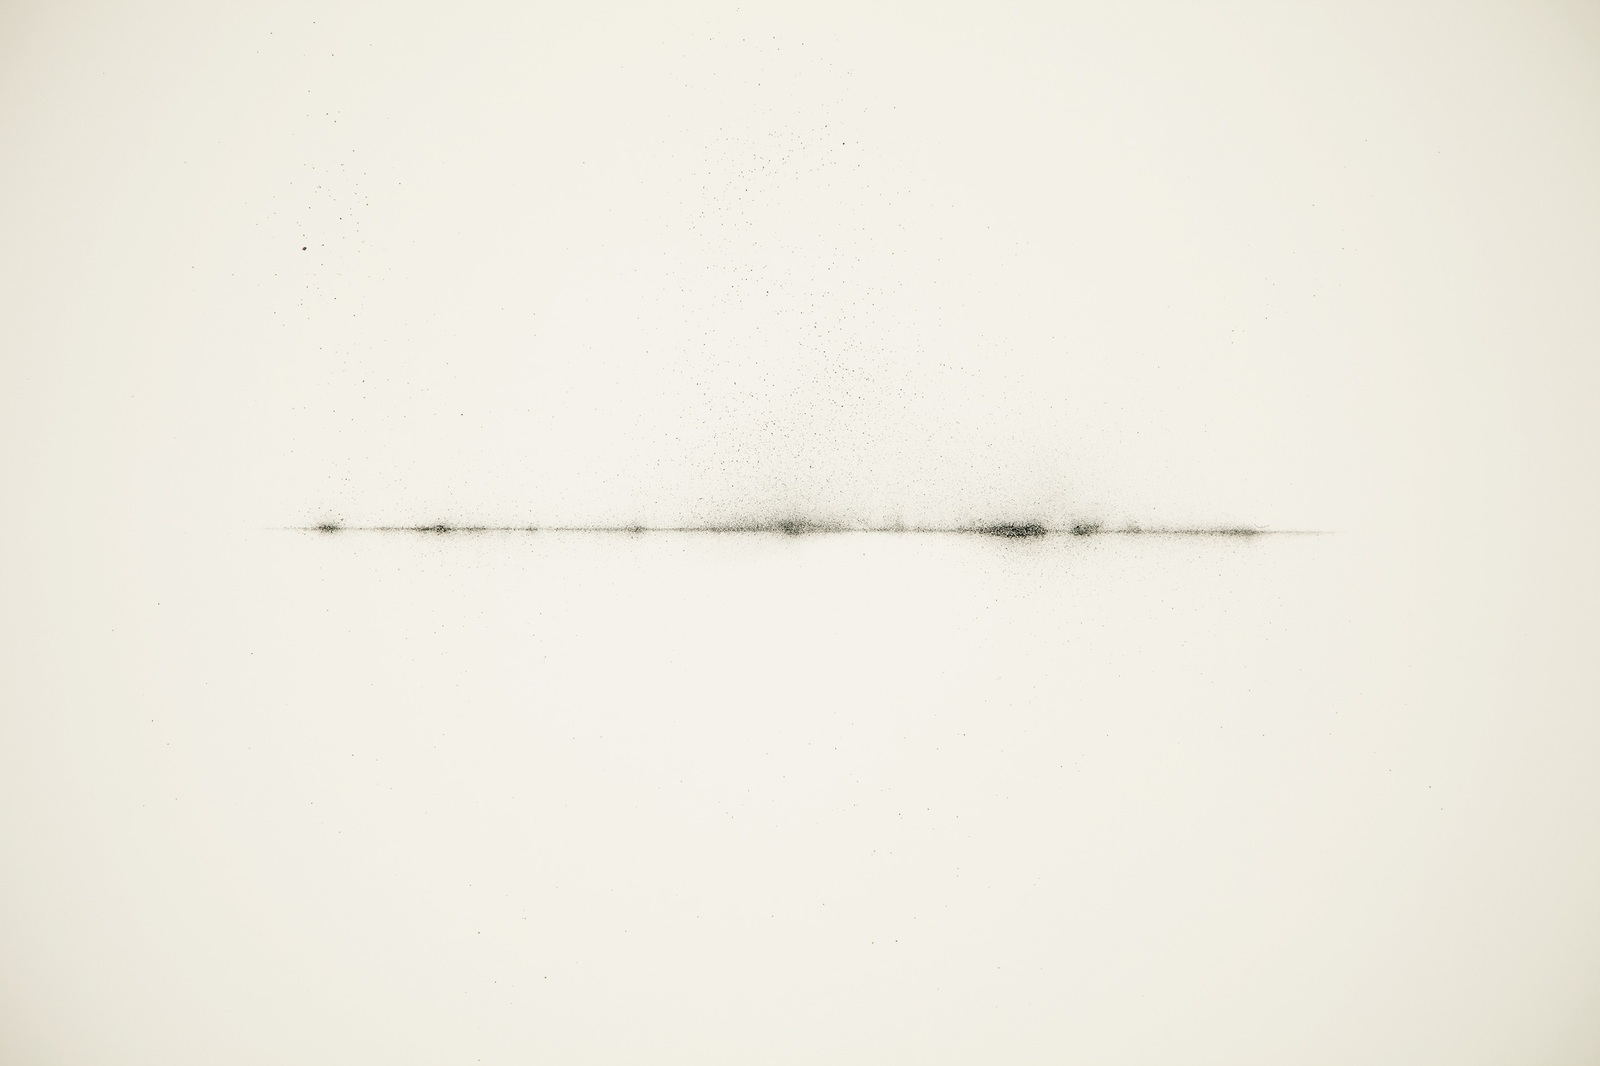 Variations for graphite-The obliquity of the solar rays in the vicinity of the pole-, 2011